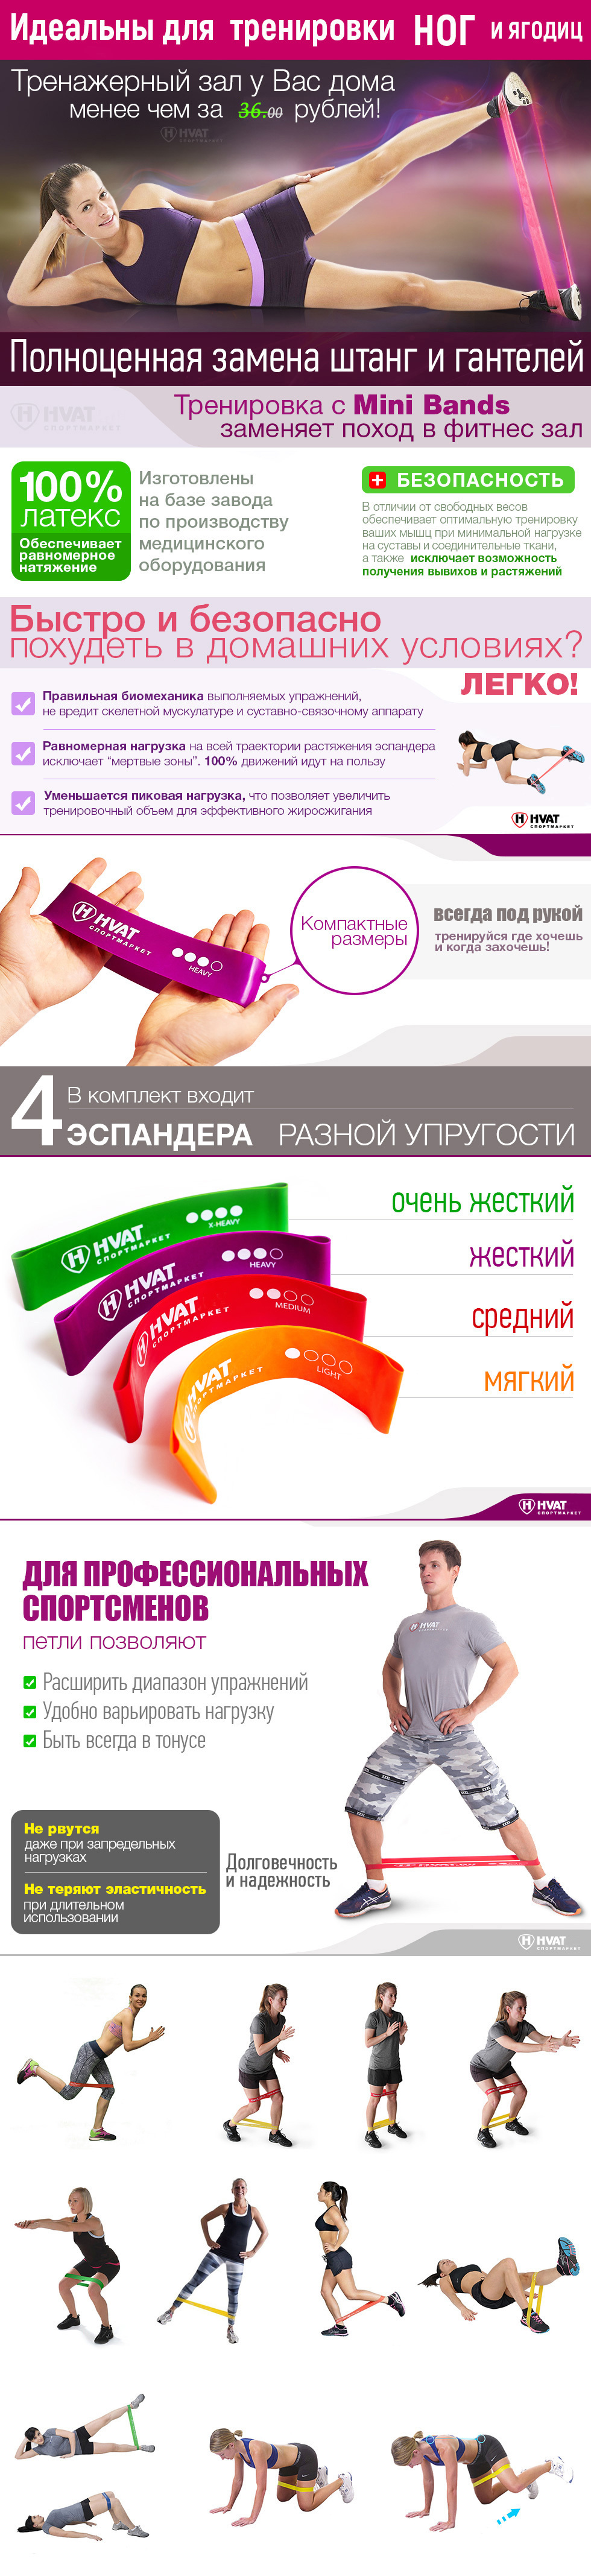 mini bands, mini bands купить, резинка для фитнеса, резинка для фитнеса для ног, фитнес резинка